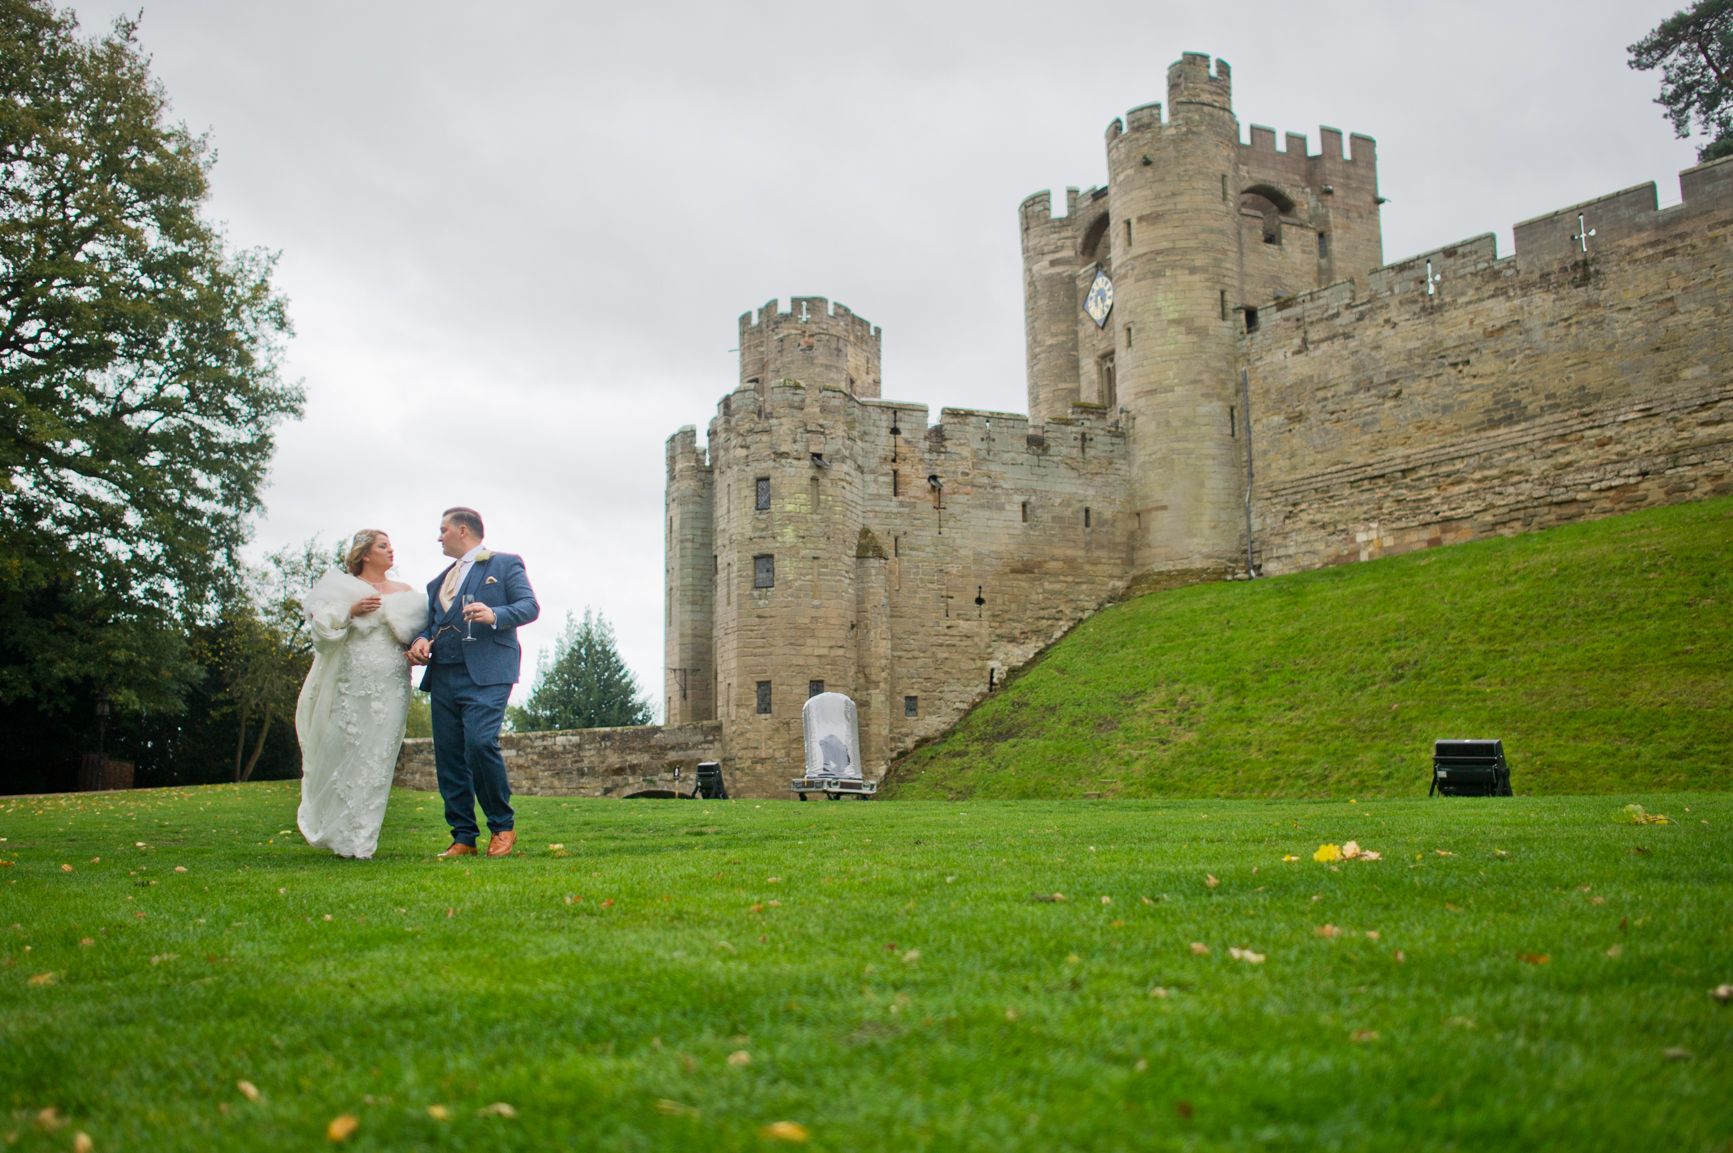 We stepped beyond the castle proper to take photos in the grounds. With so many backdrops we were very spoilt for choice.